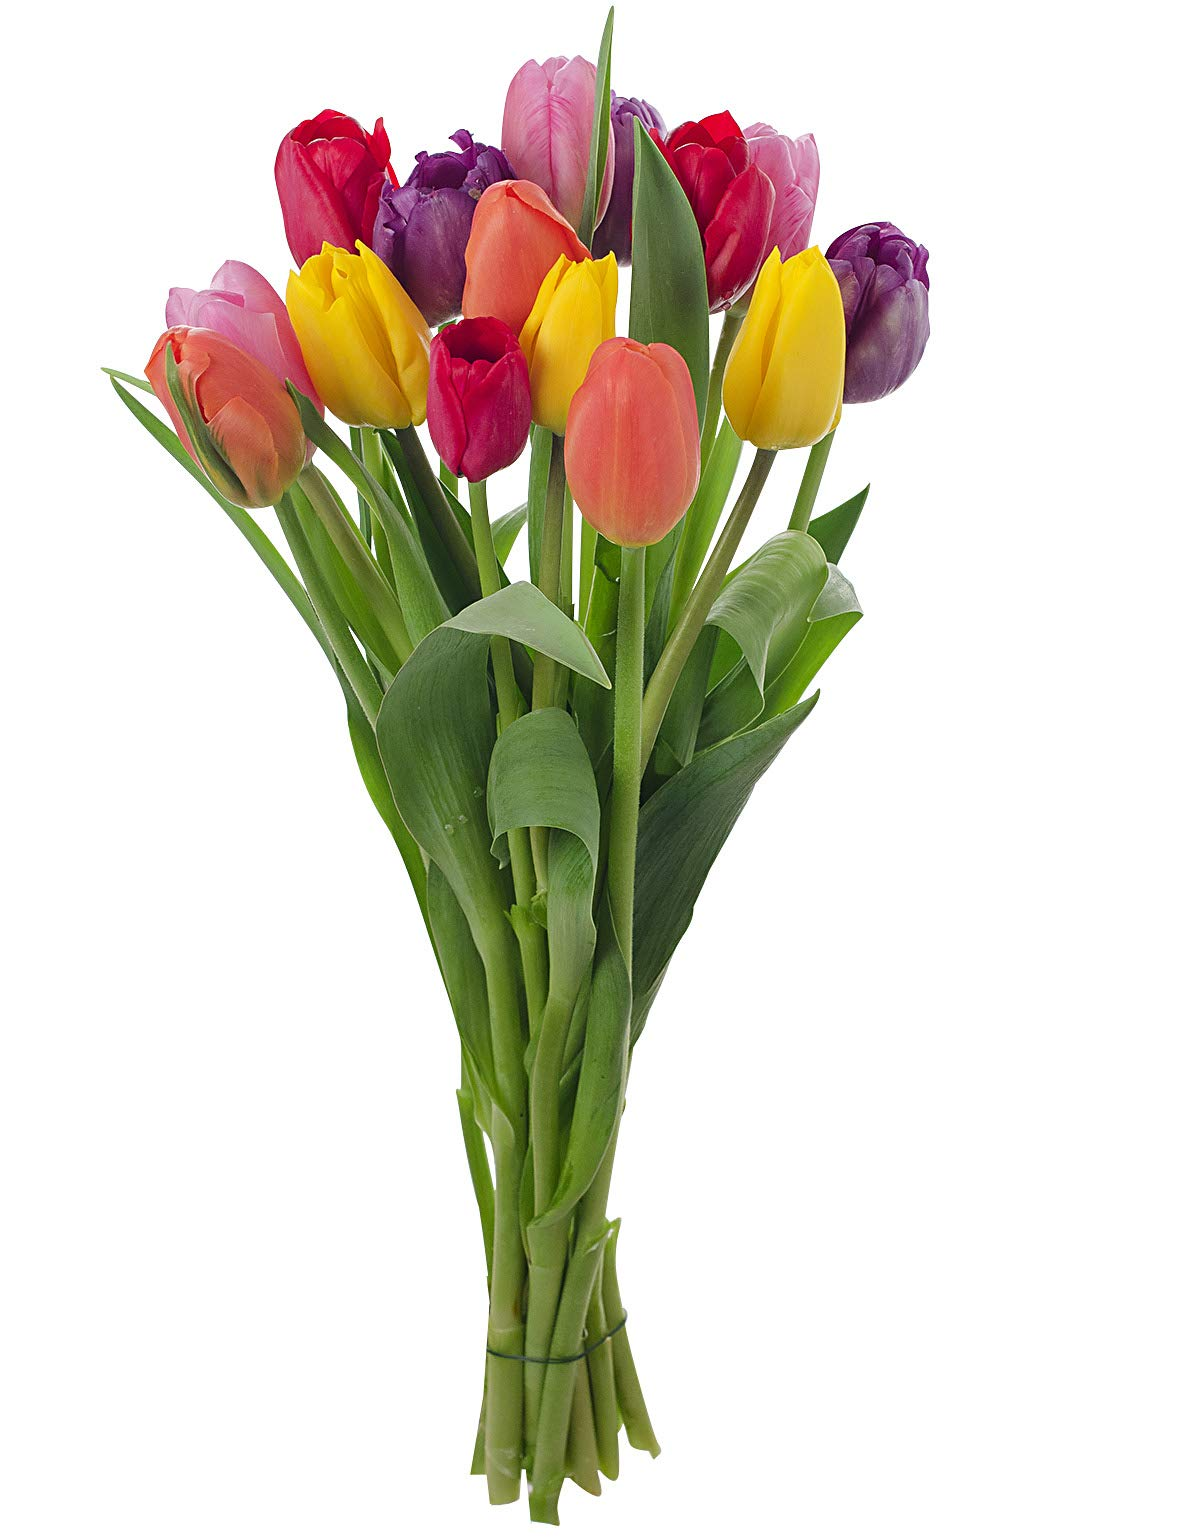 Stargazer Barn - Happy Bouquet - 15 Stems of Fresh Tulips in Rainbow Assortment - No Vase by Stargazer Barn